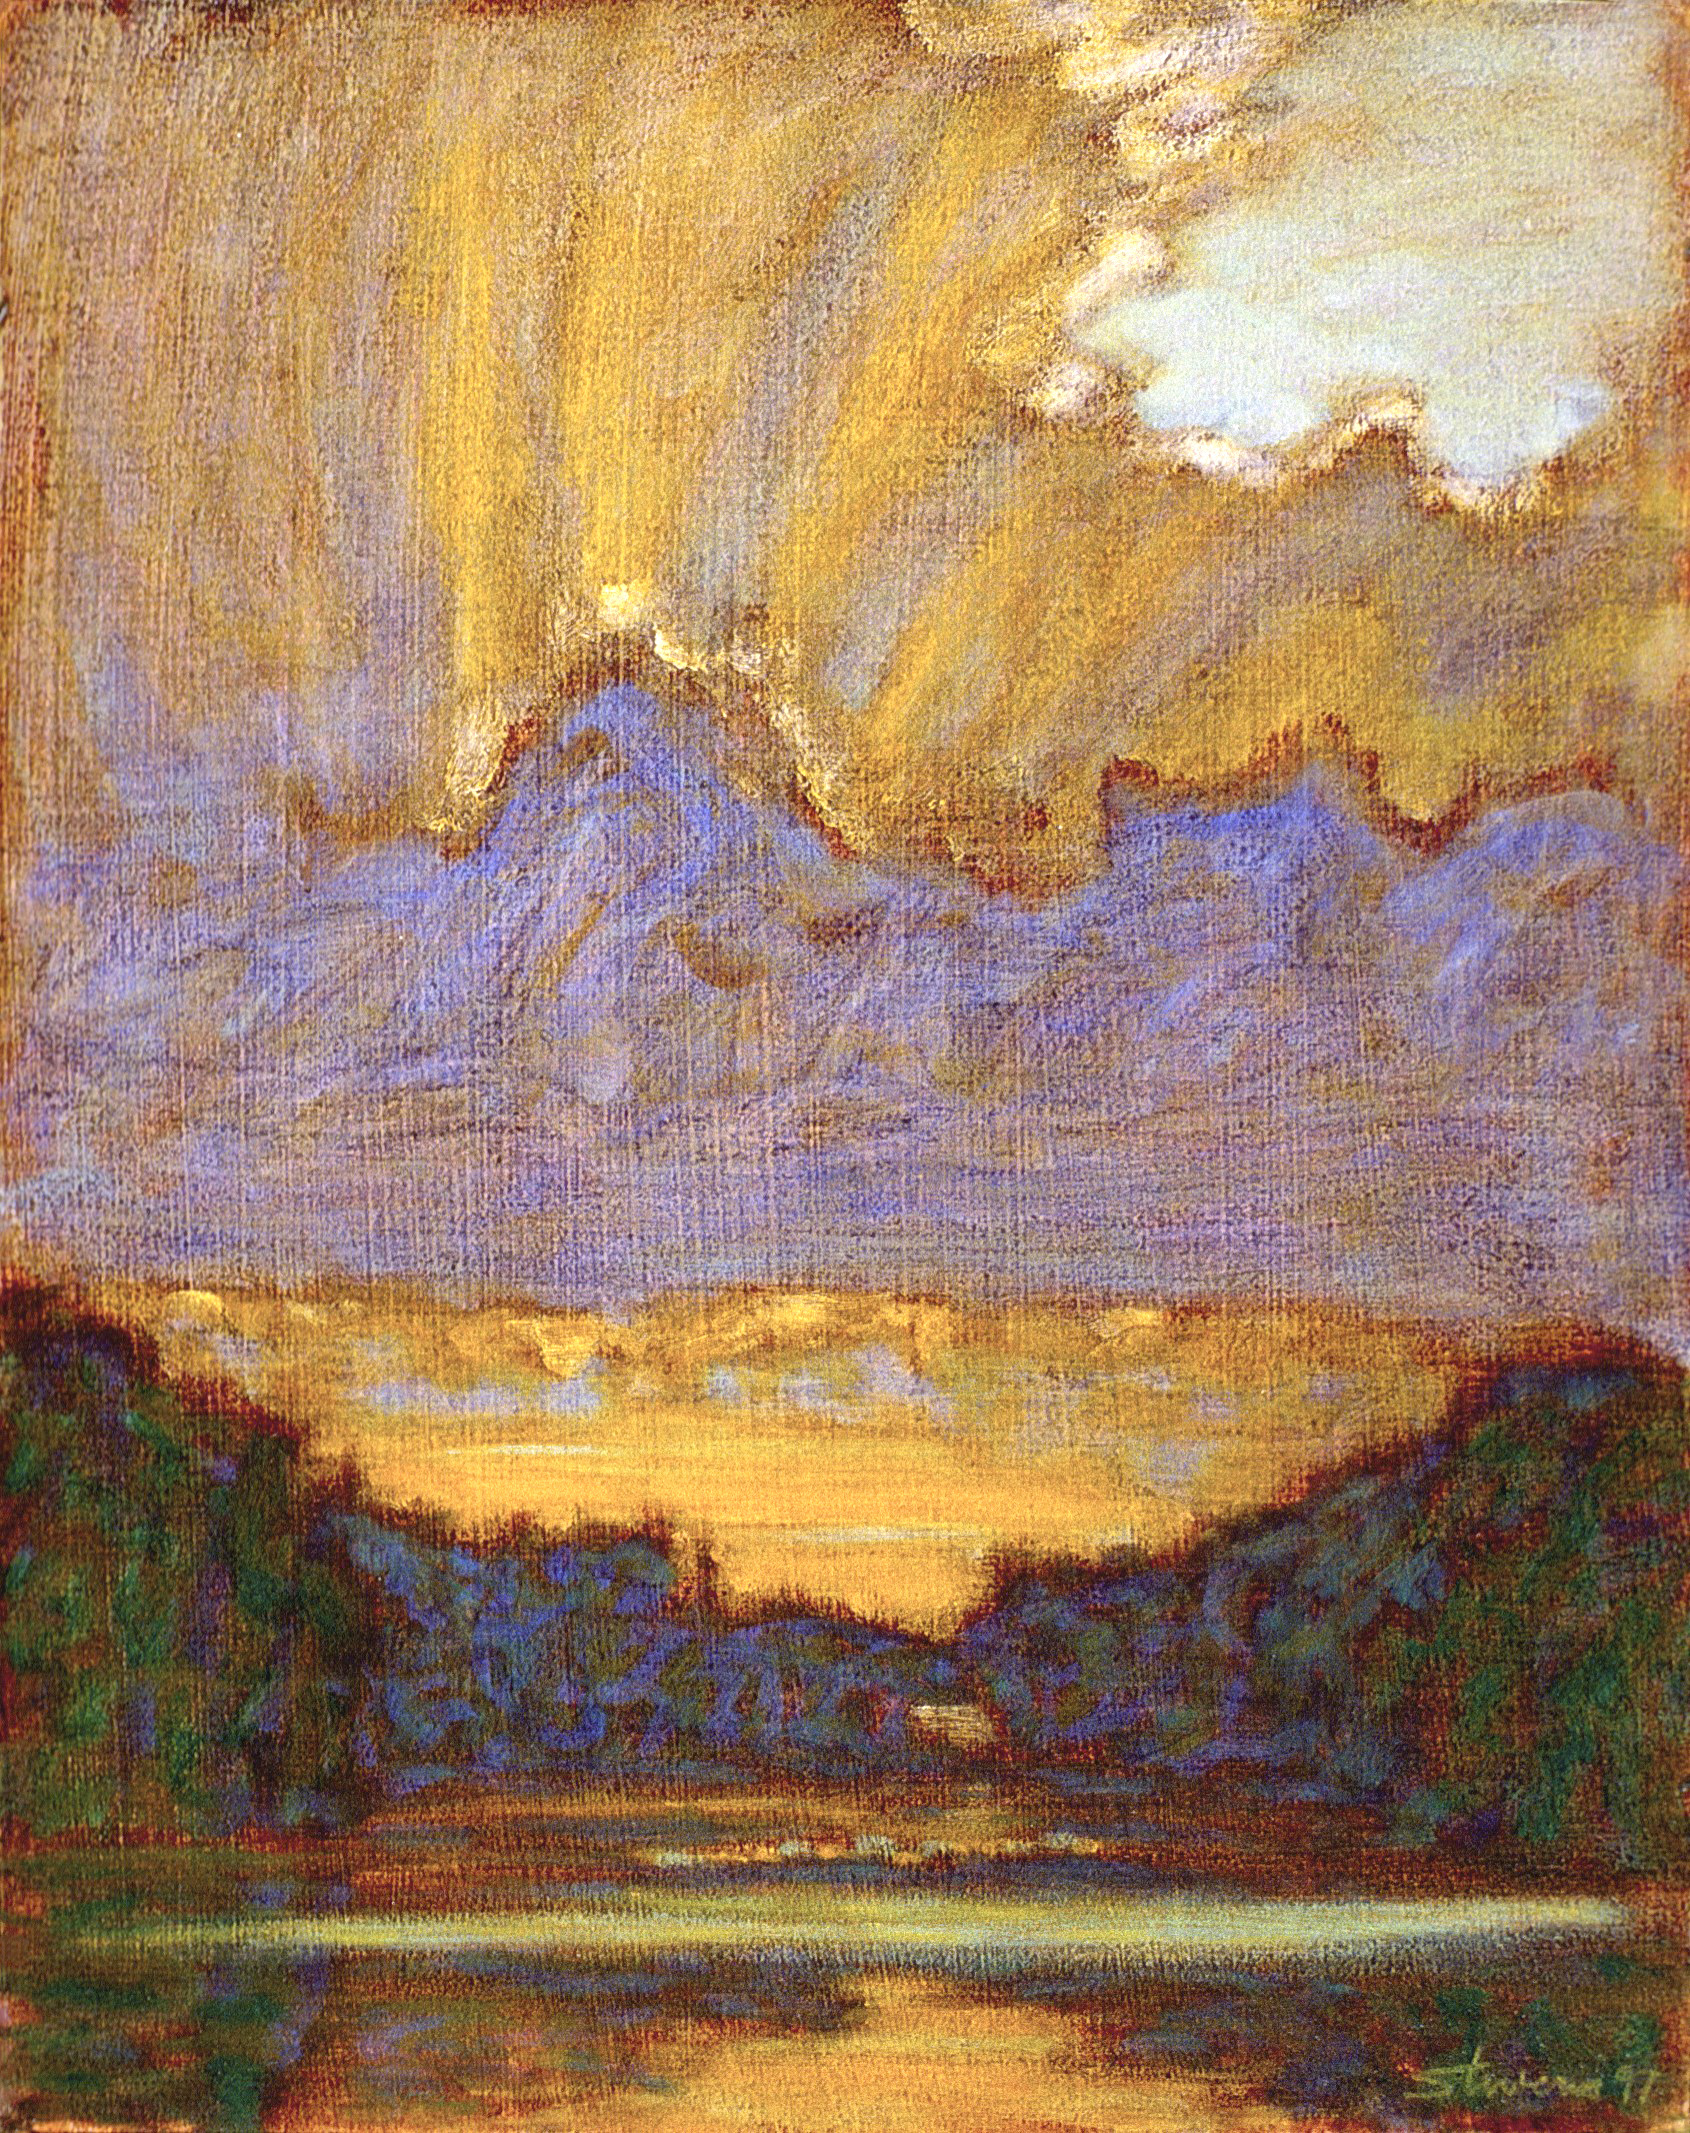 Wooded Lake   | oil on canvas | 15 x 12"